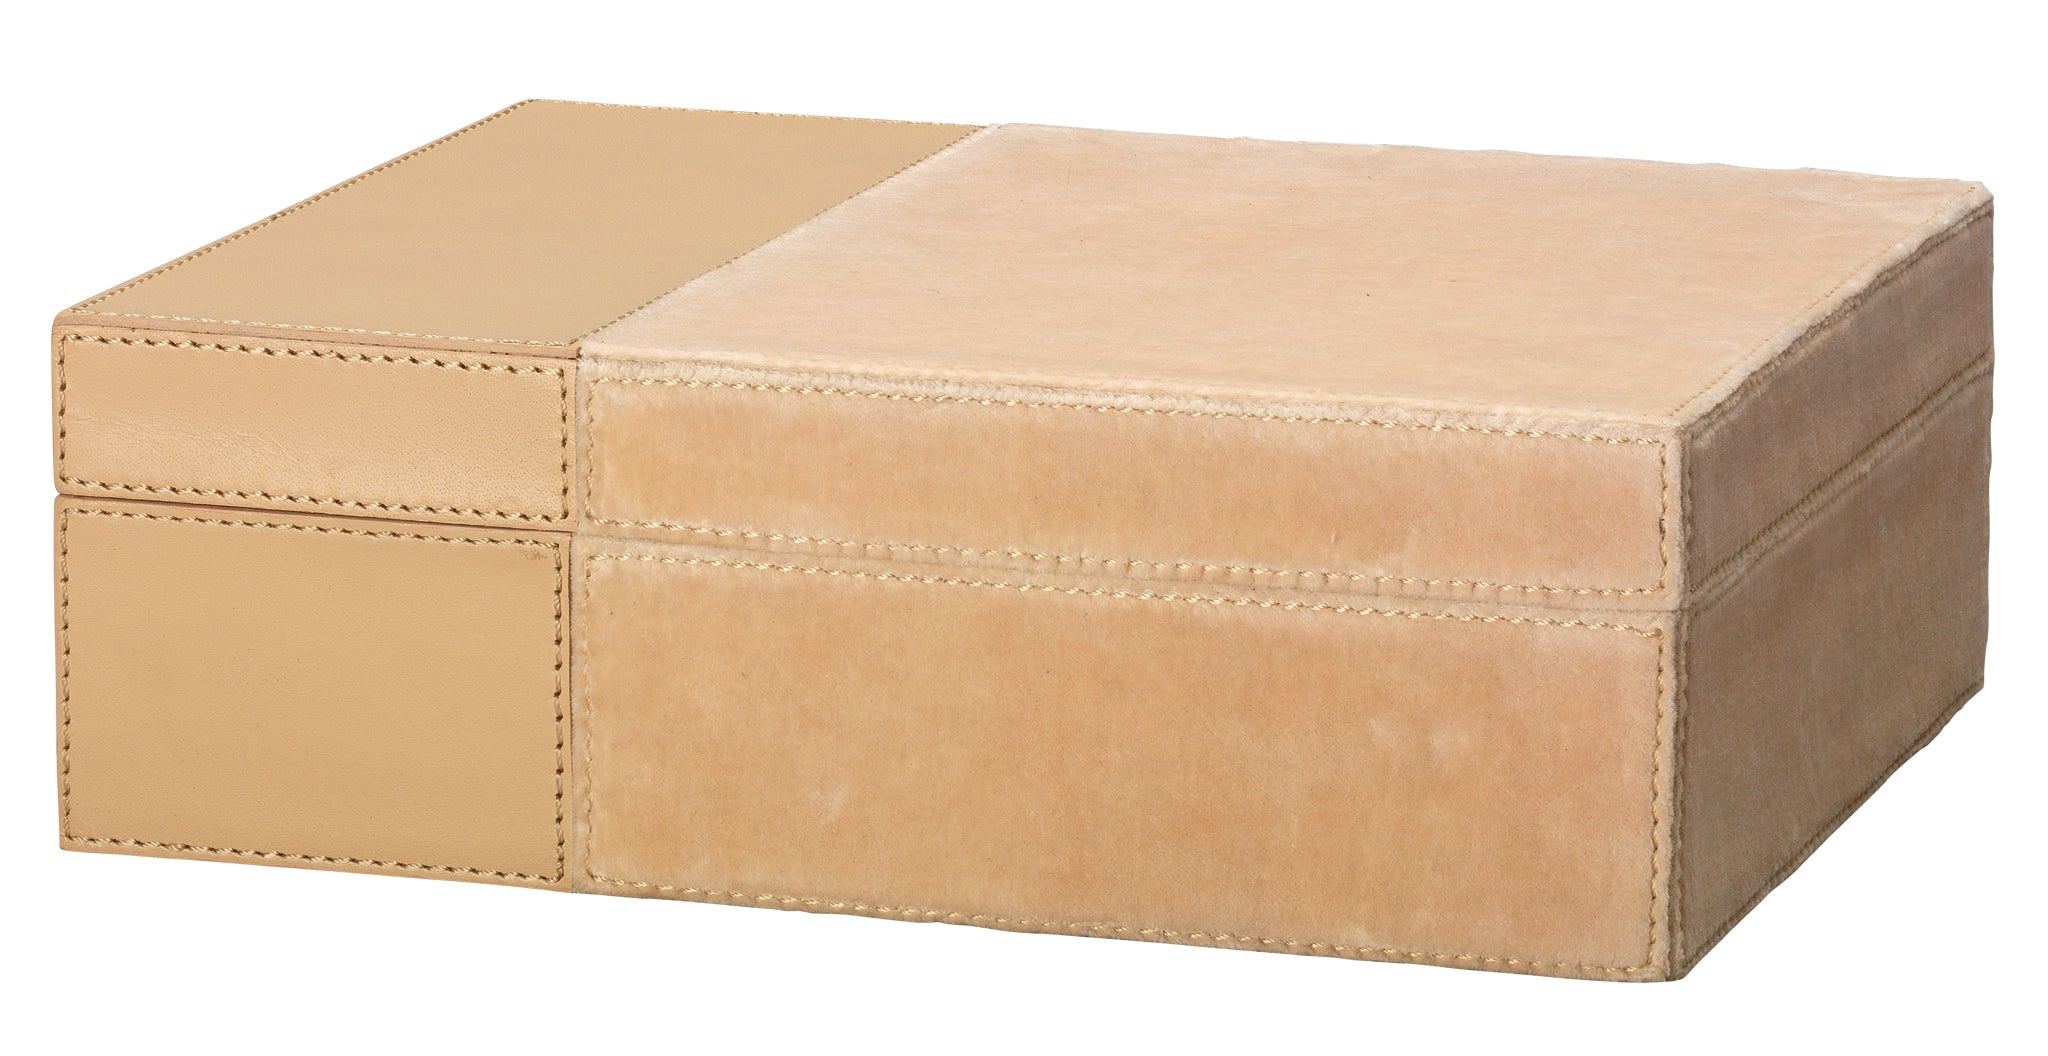 Aria Velvet & Leather Box in Nude